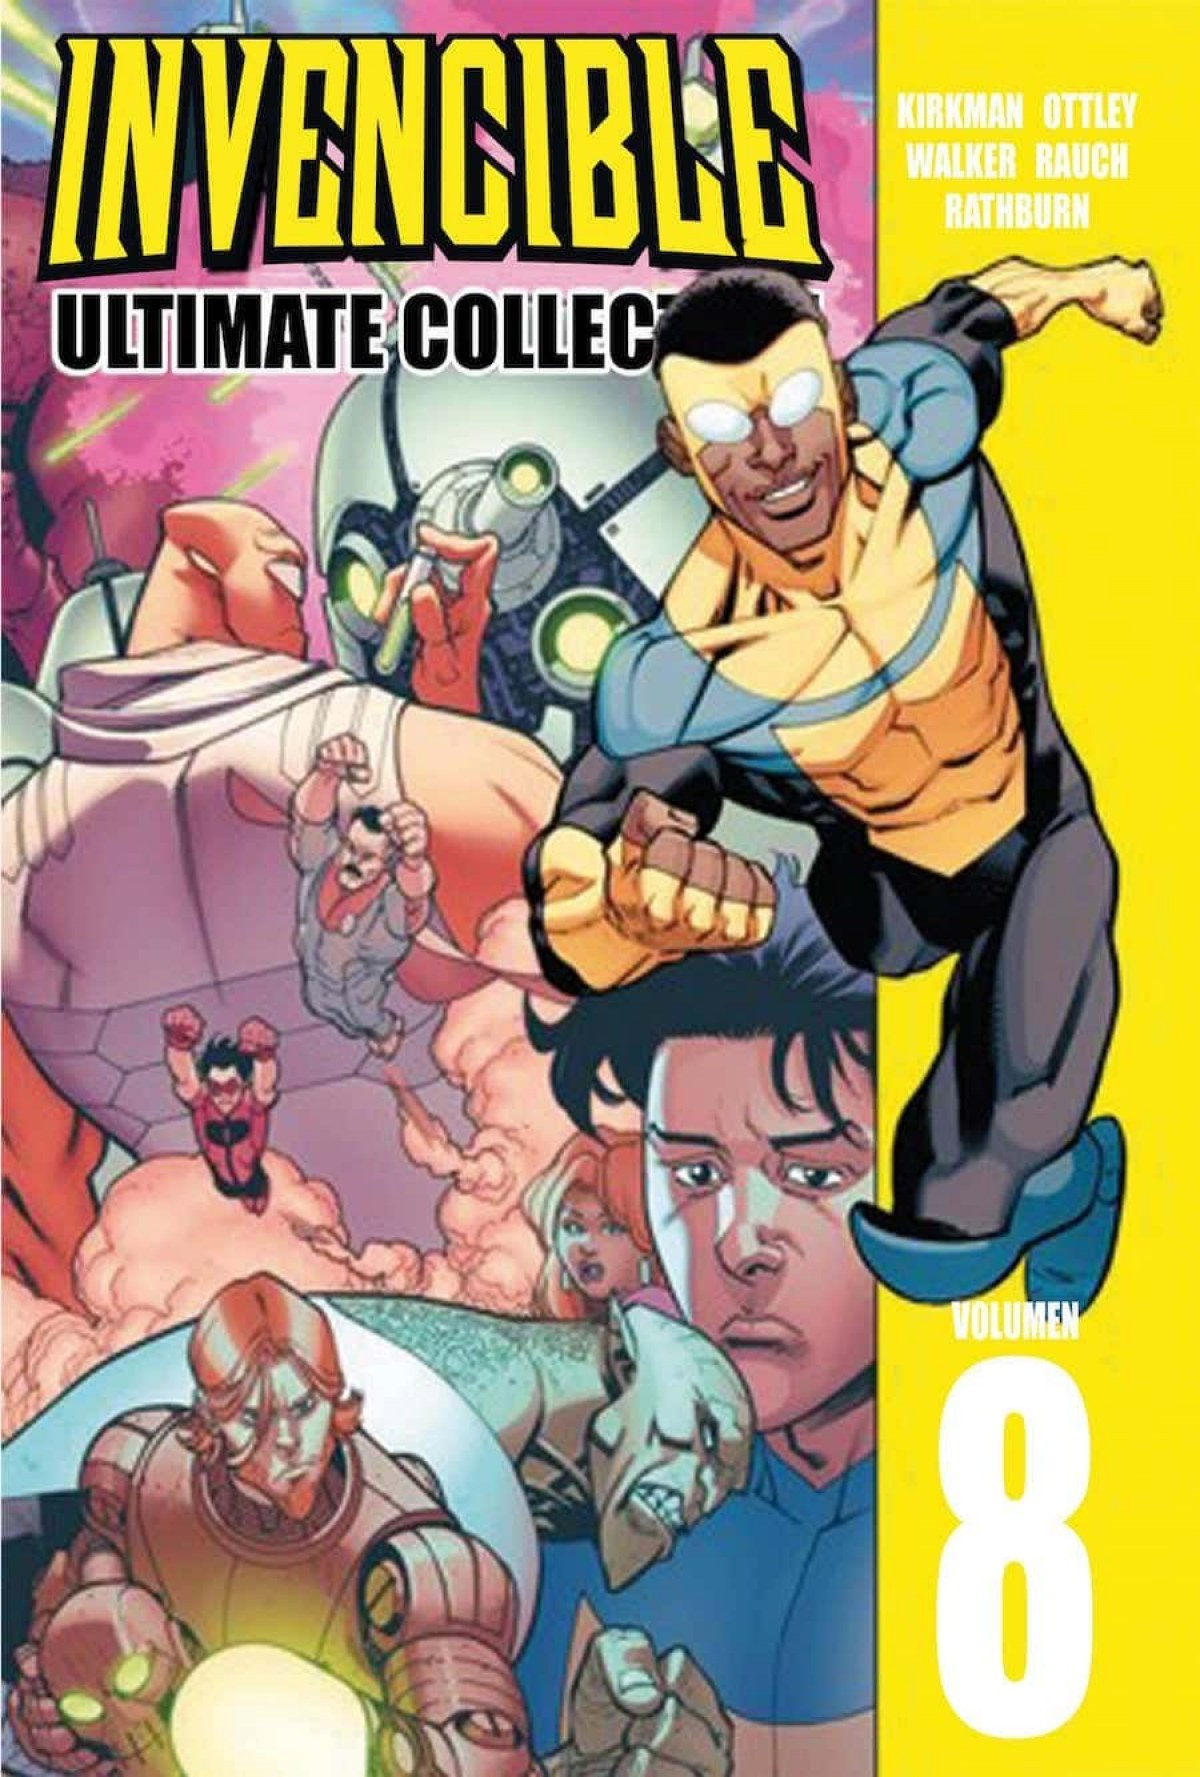 INVENCIBLE ULTIMATE 8